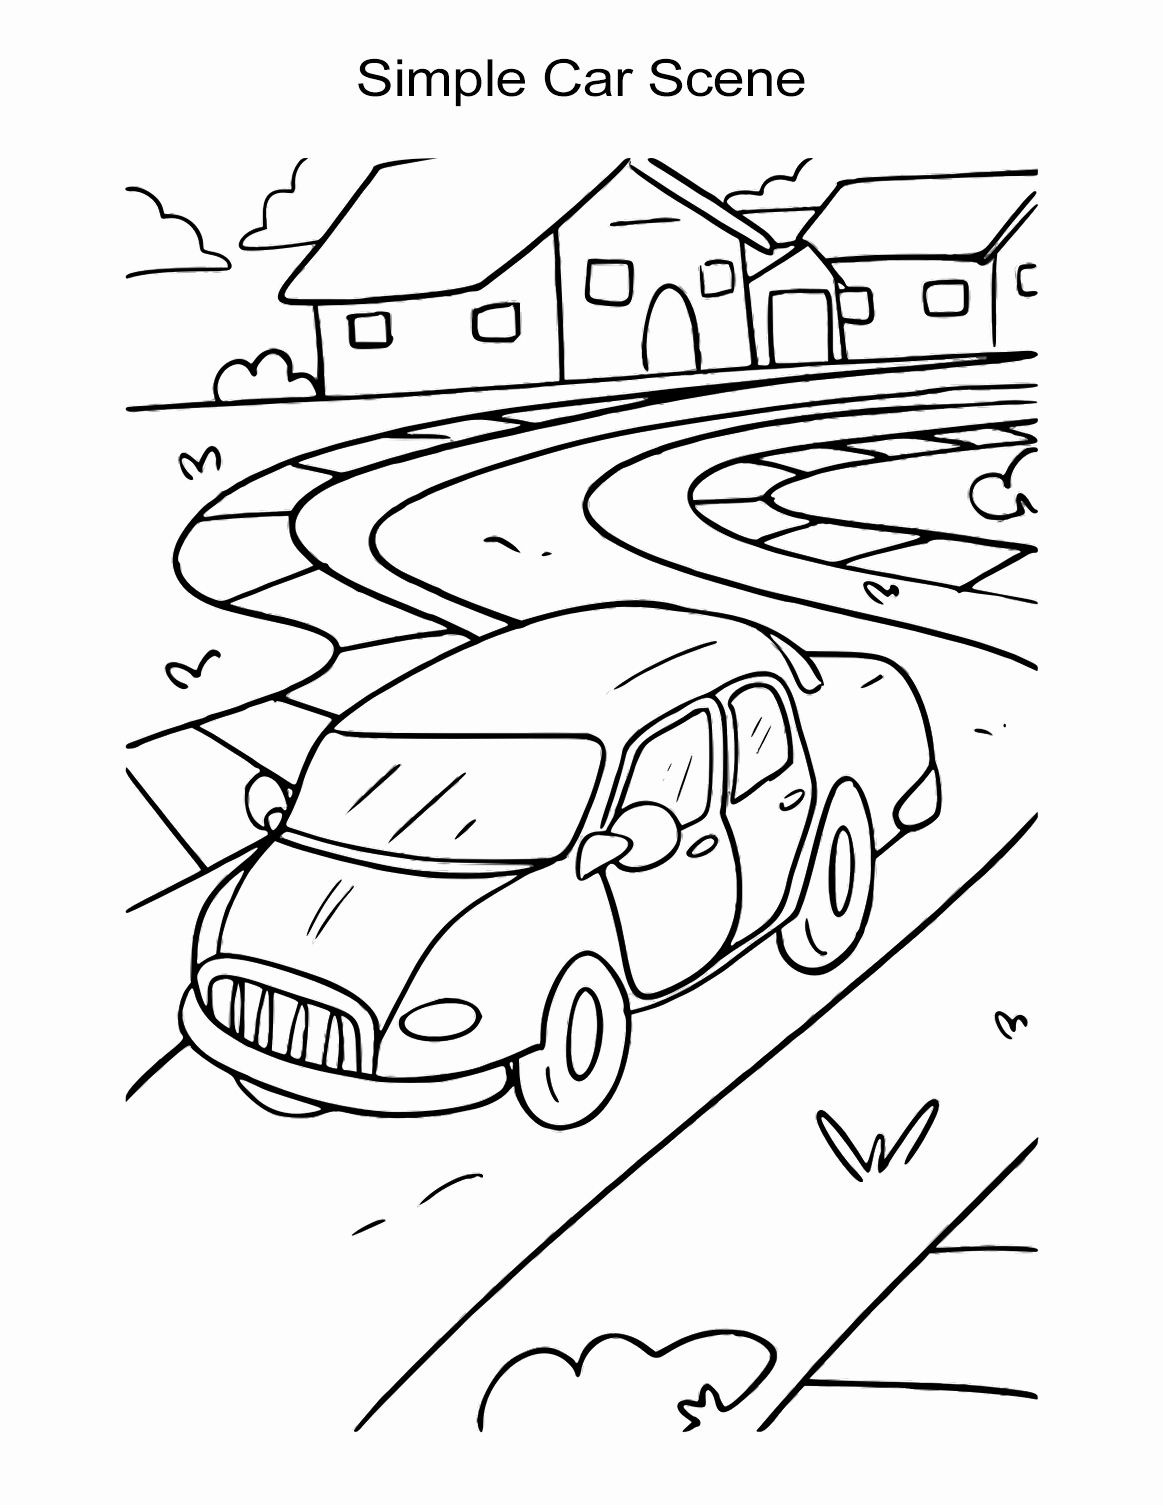 Barbie Car Coloring Pages Fresh Coloring Ideas Car Coloring Sheets